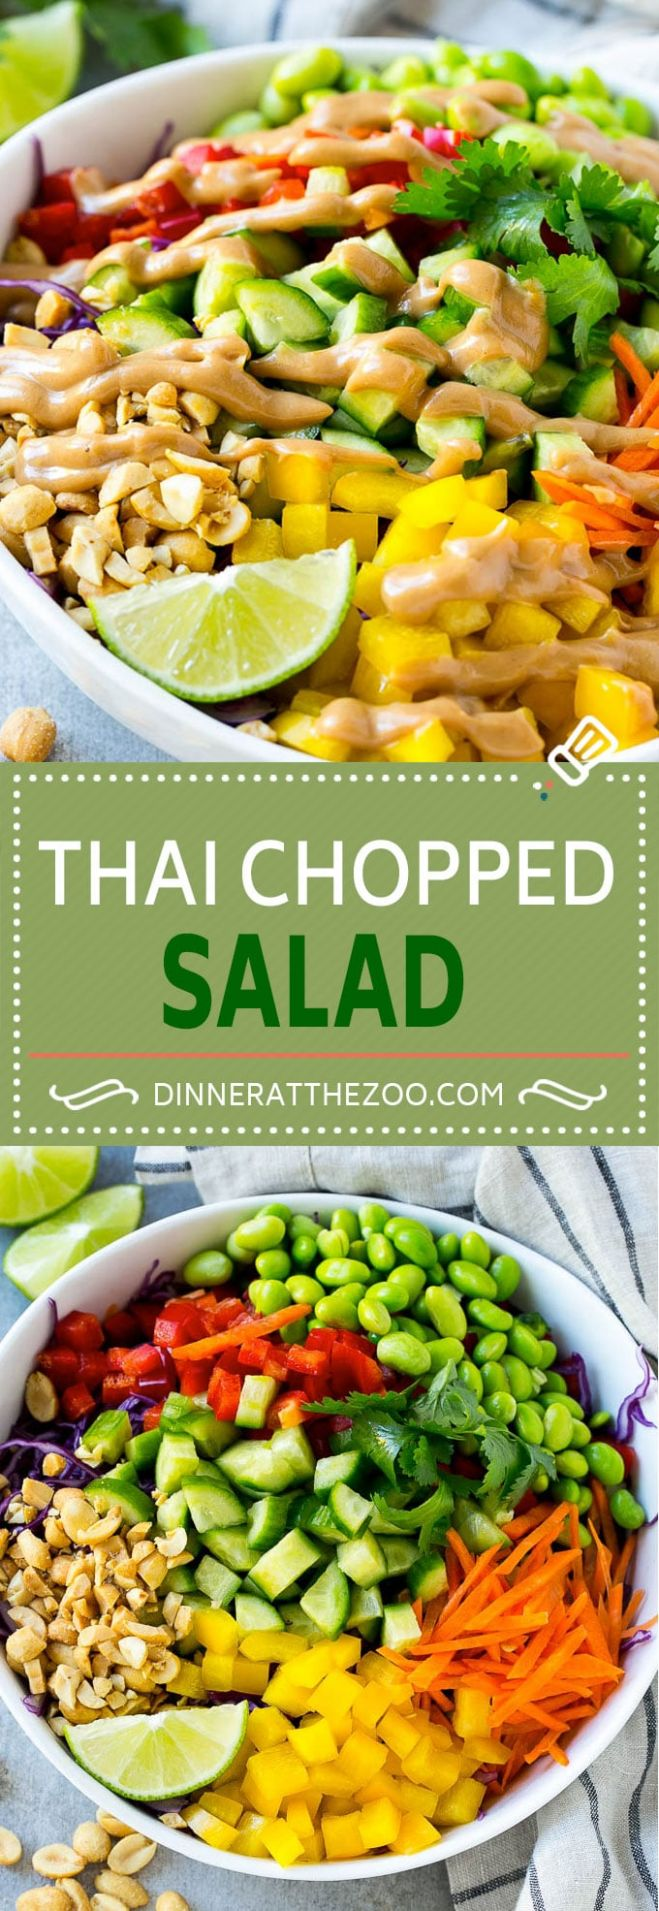 12 Healthy Salad Recipes - Dinner at the Zoo